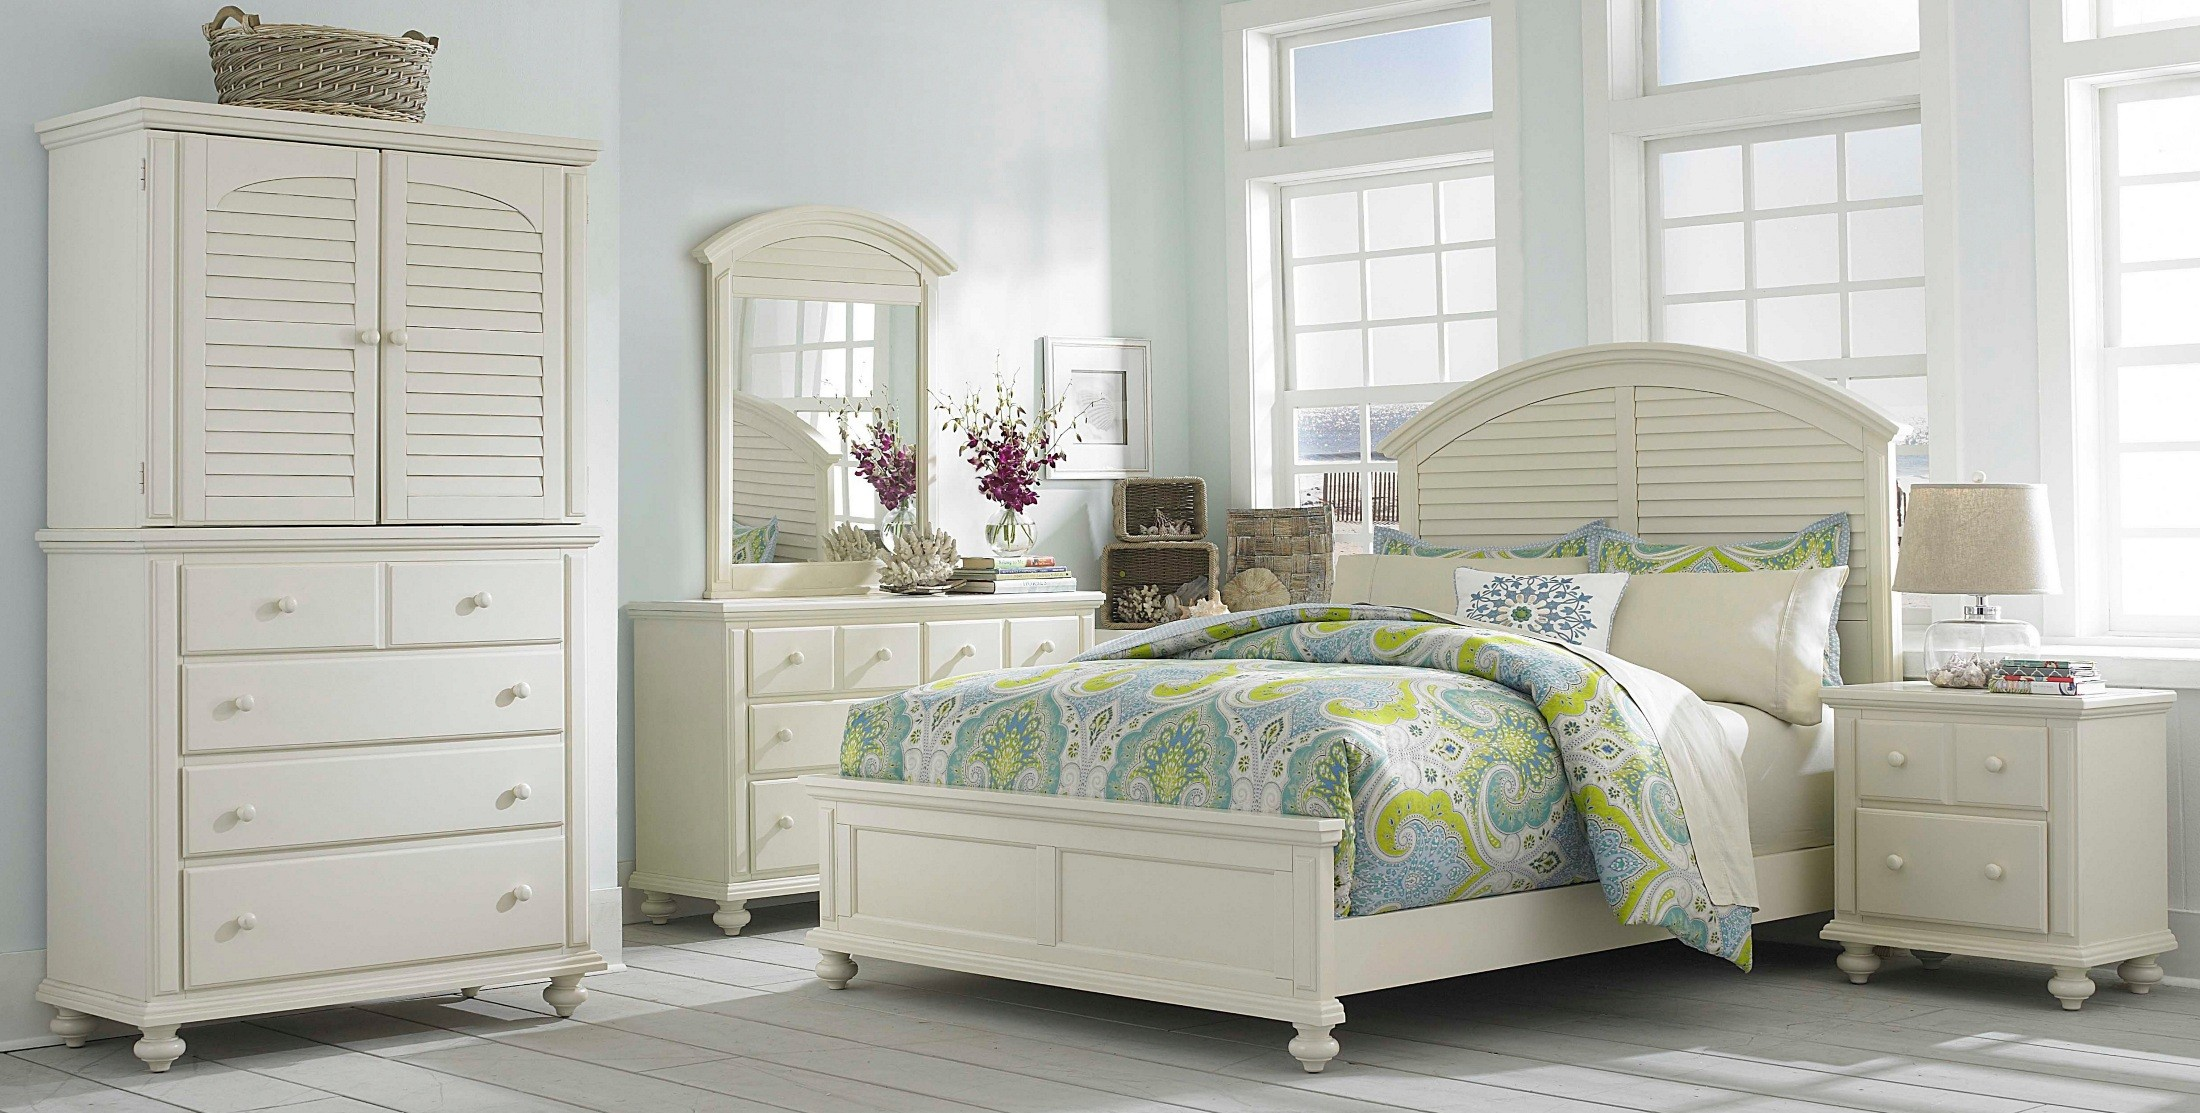 Seabrooke Youth Panel Bedroom Set From Broyhill 4471 246 245 350 Coleman Furniture